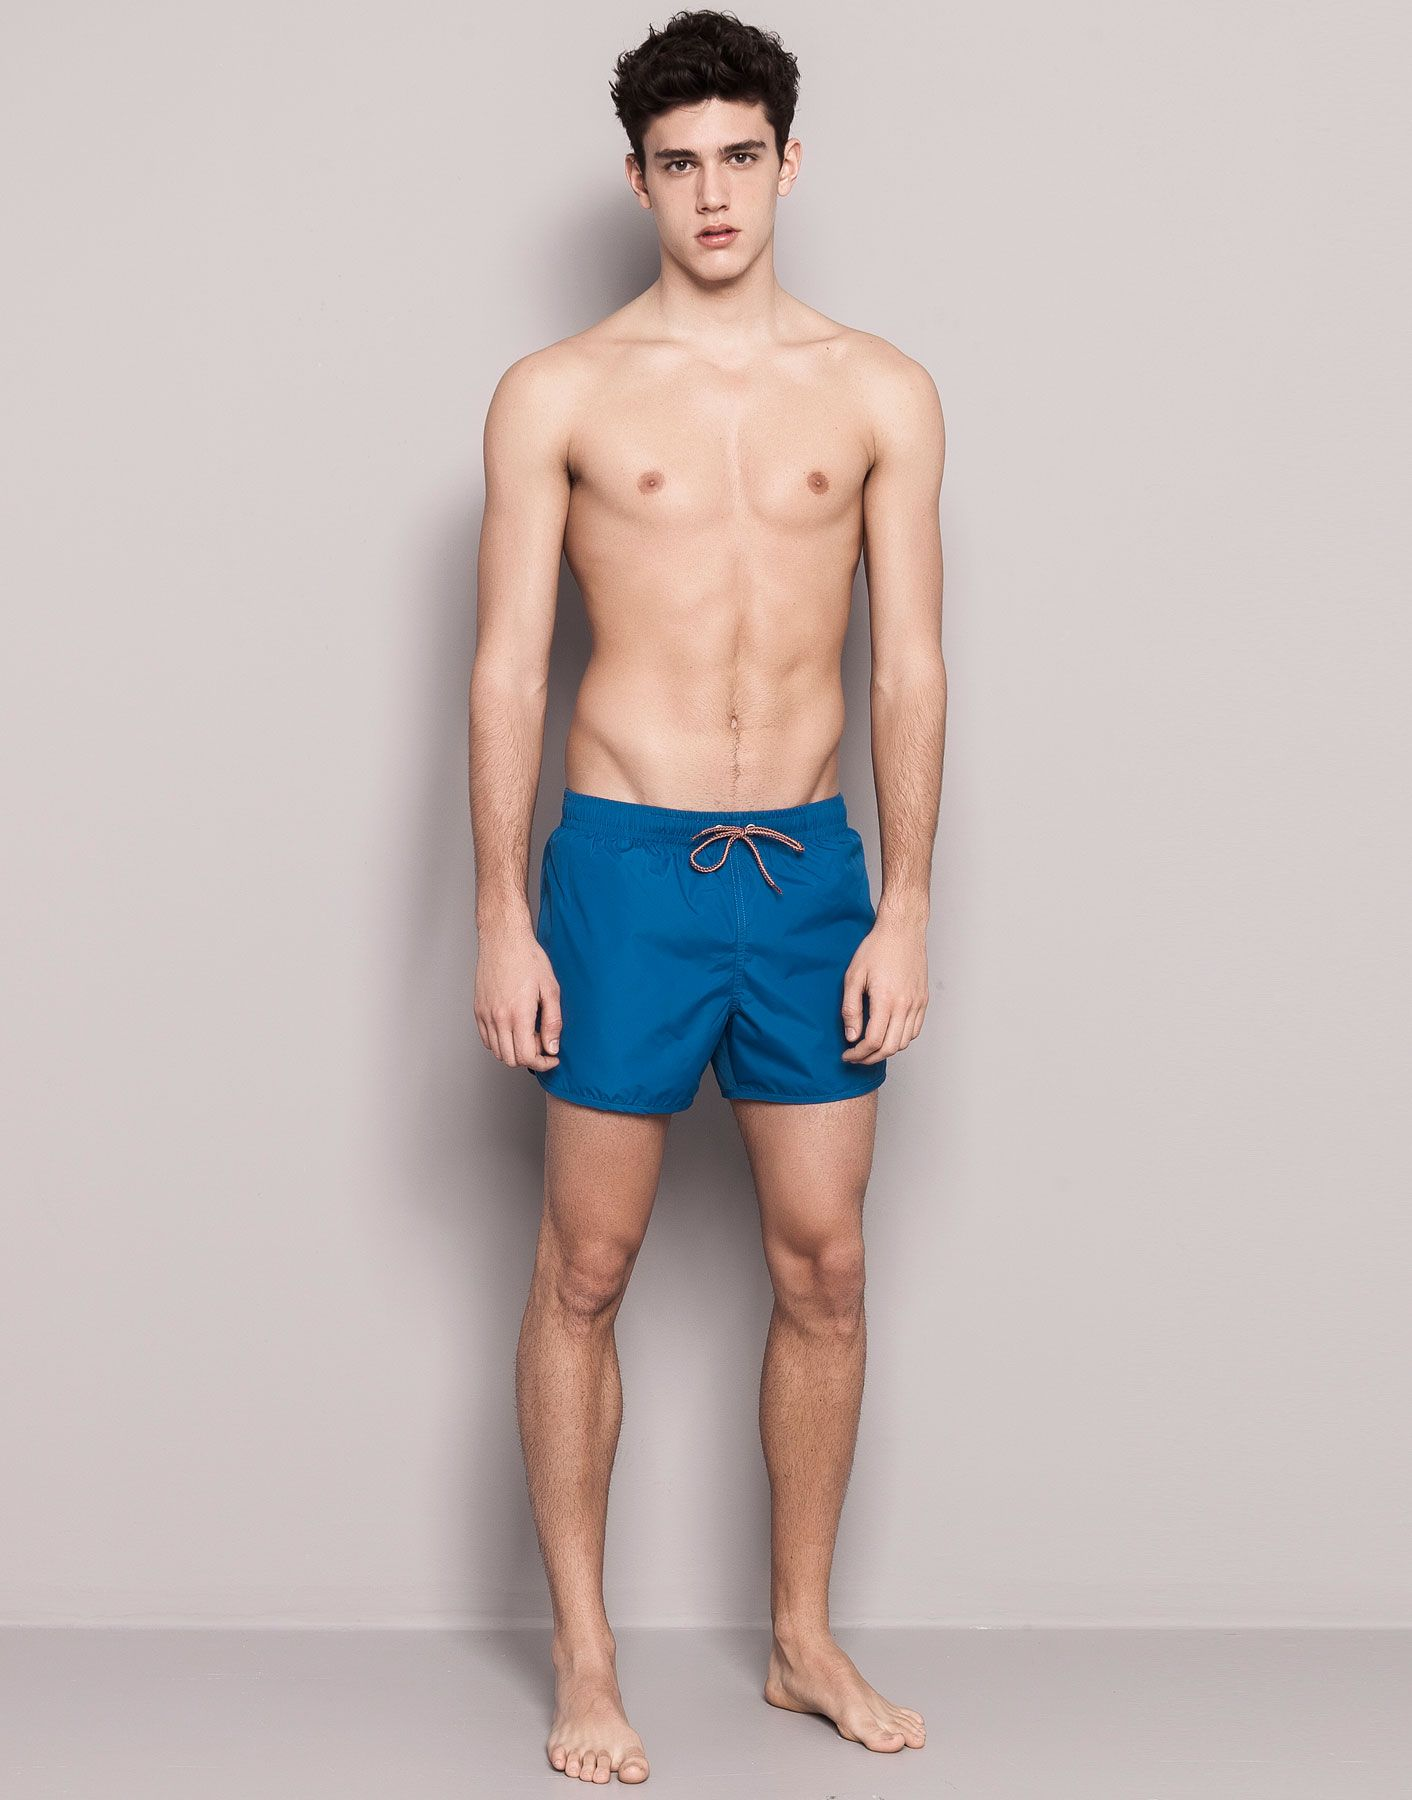 a5d5b7ca78e Swimsuit With Shorts, Blue Shorts, Pull & Bear, Swim Trunks, Swimsuit,